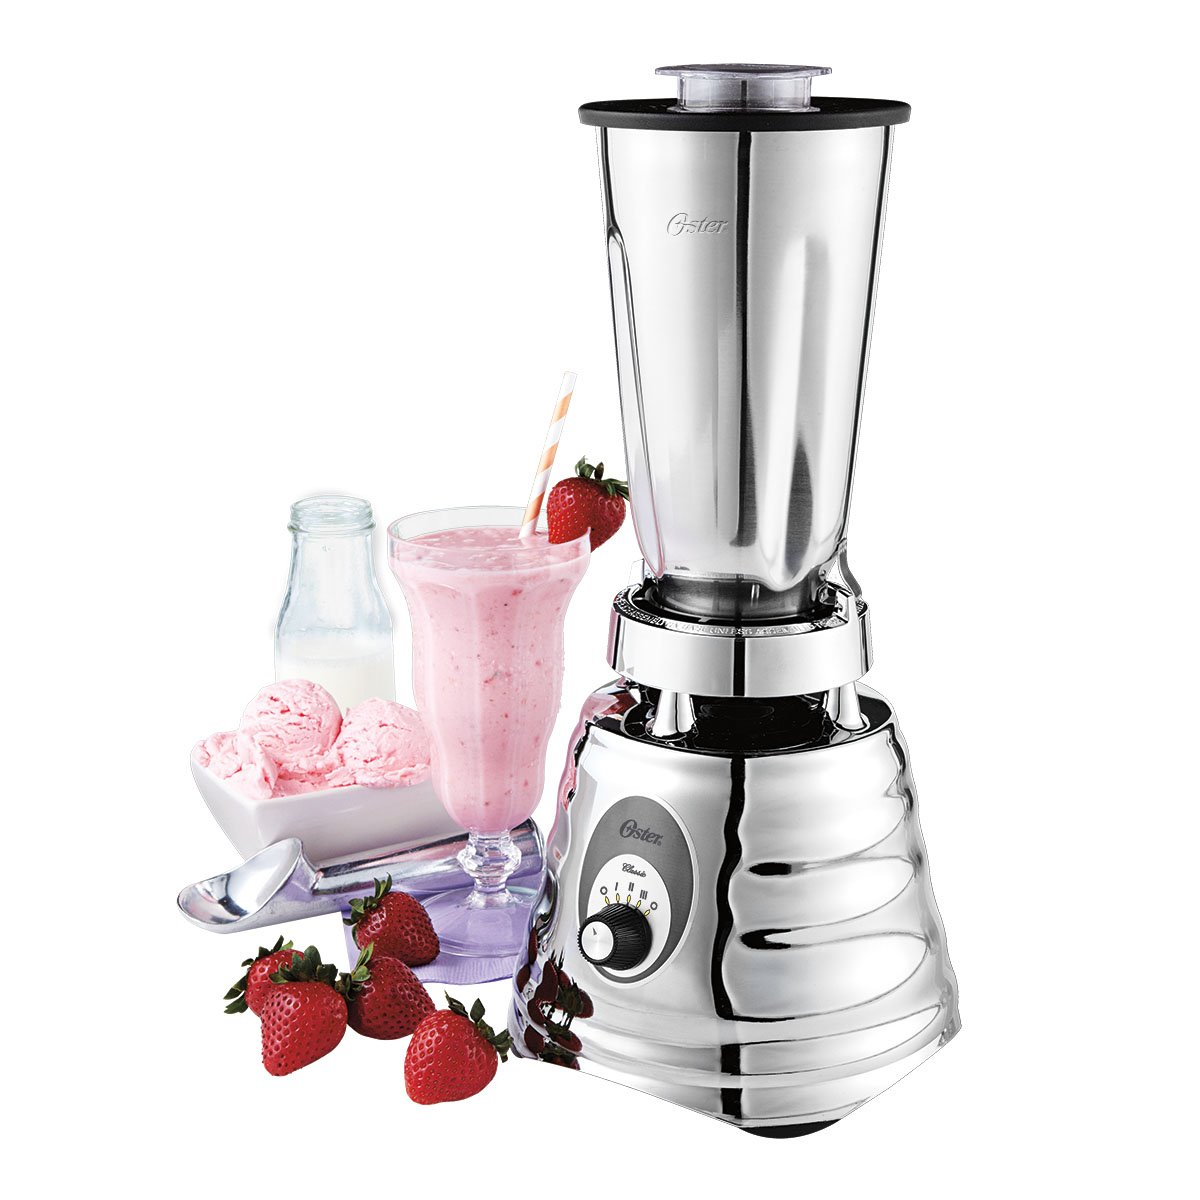 Oster® Classic Series Kitchen Center Blender at Oster.ca